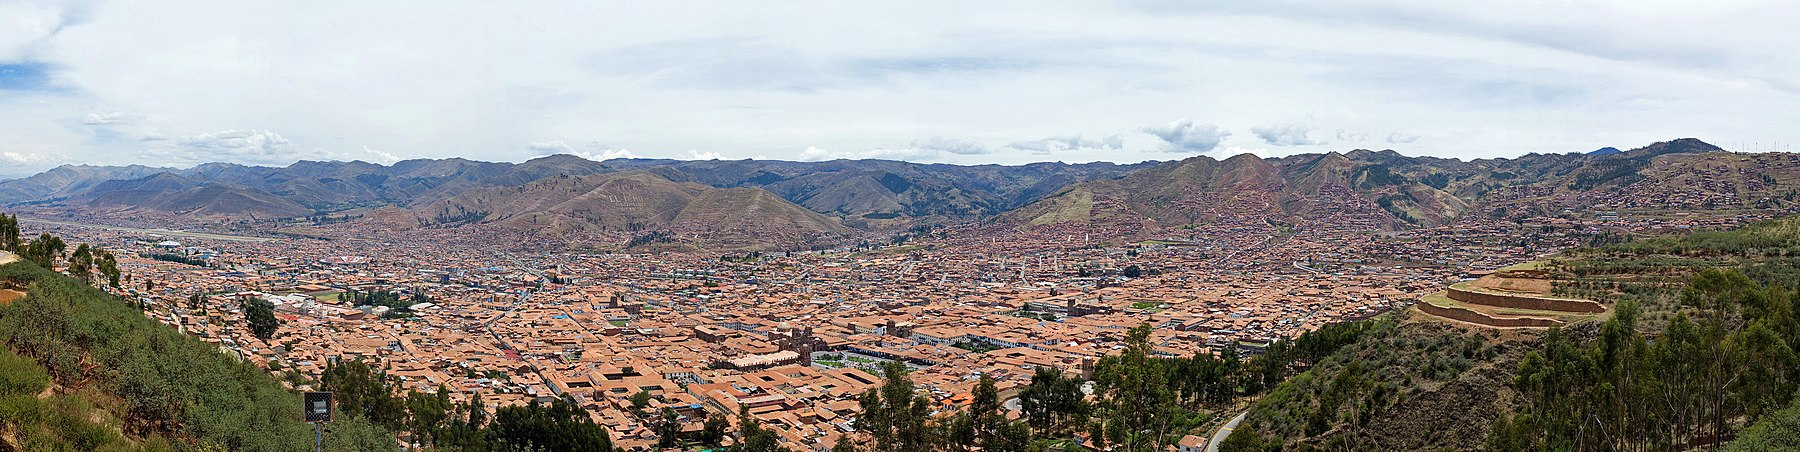 Cuzco-Pano edit.jpg